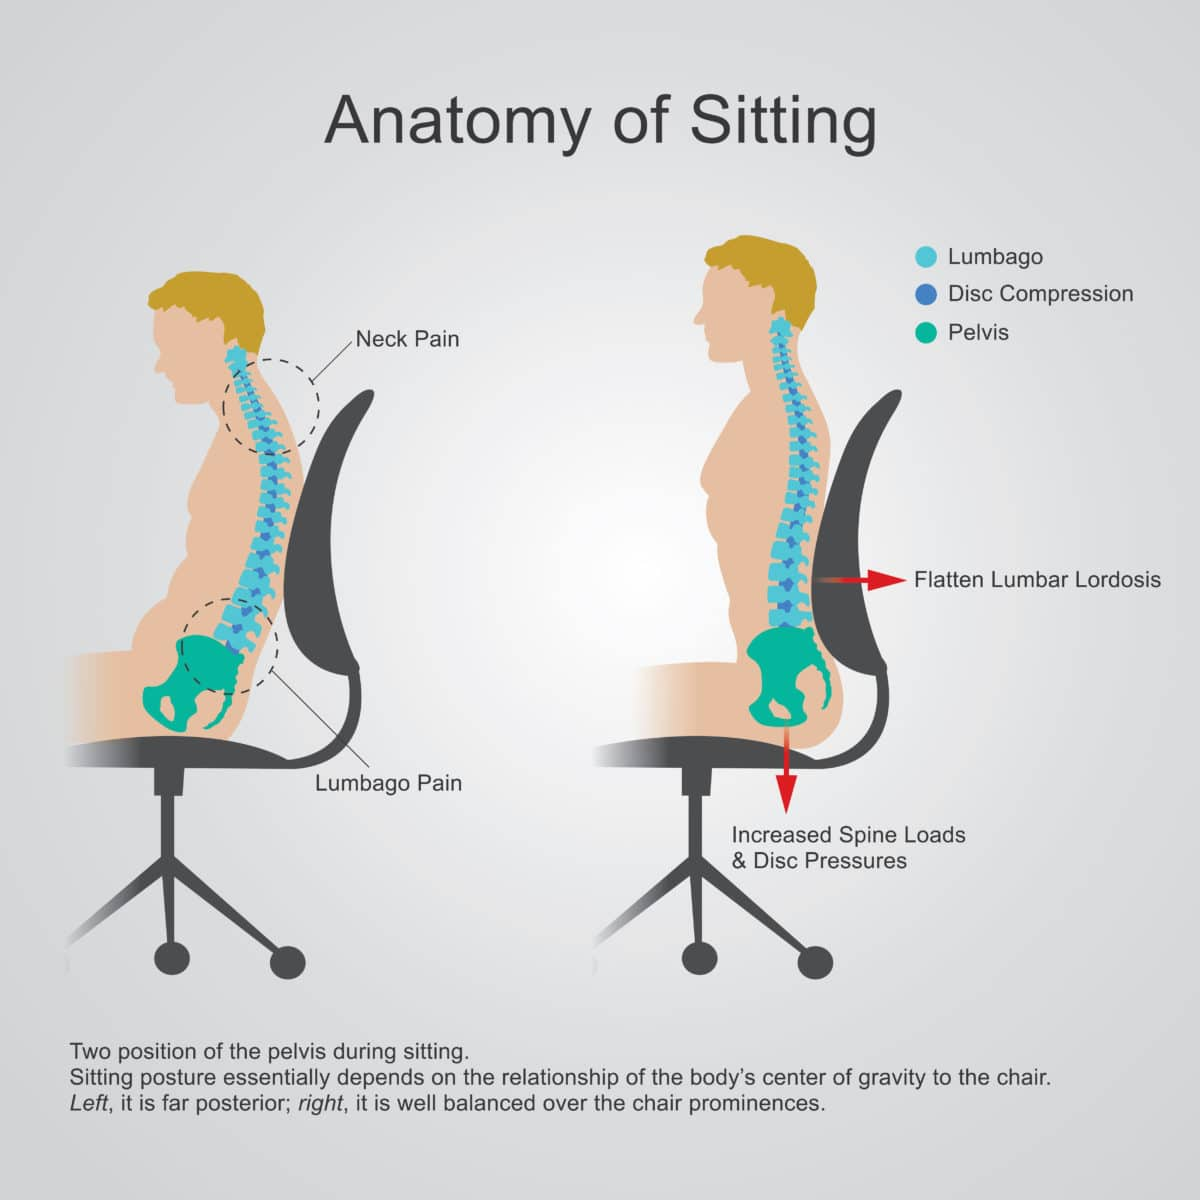 graphic showing the anatomy of sitting